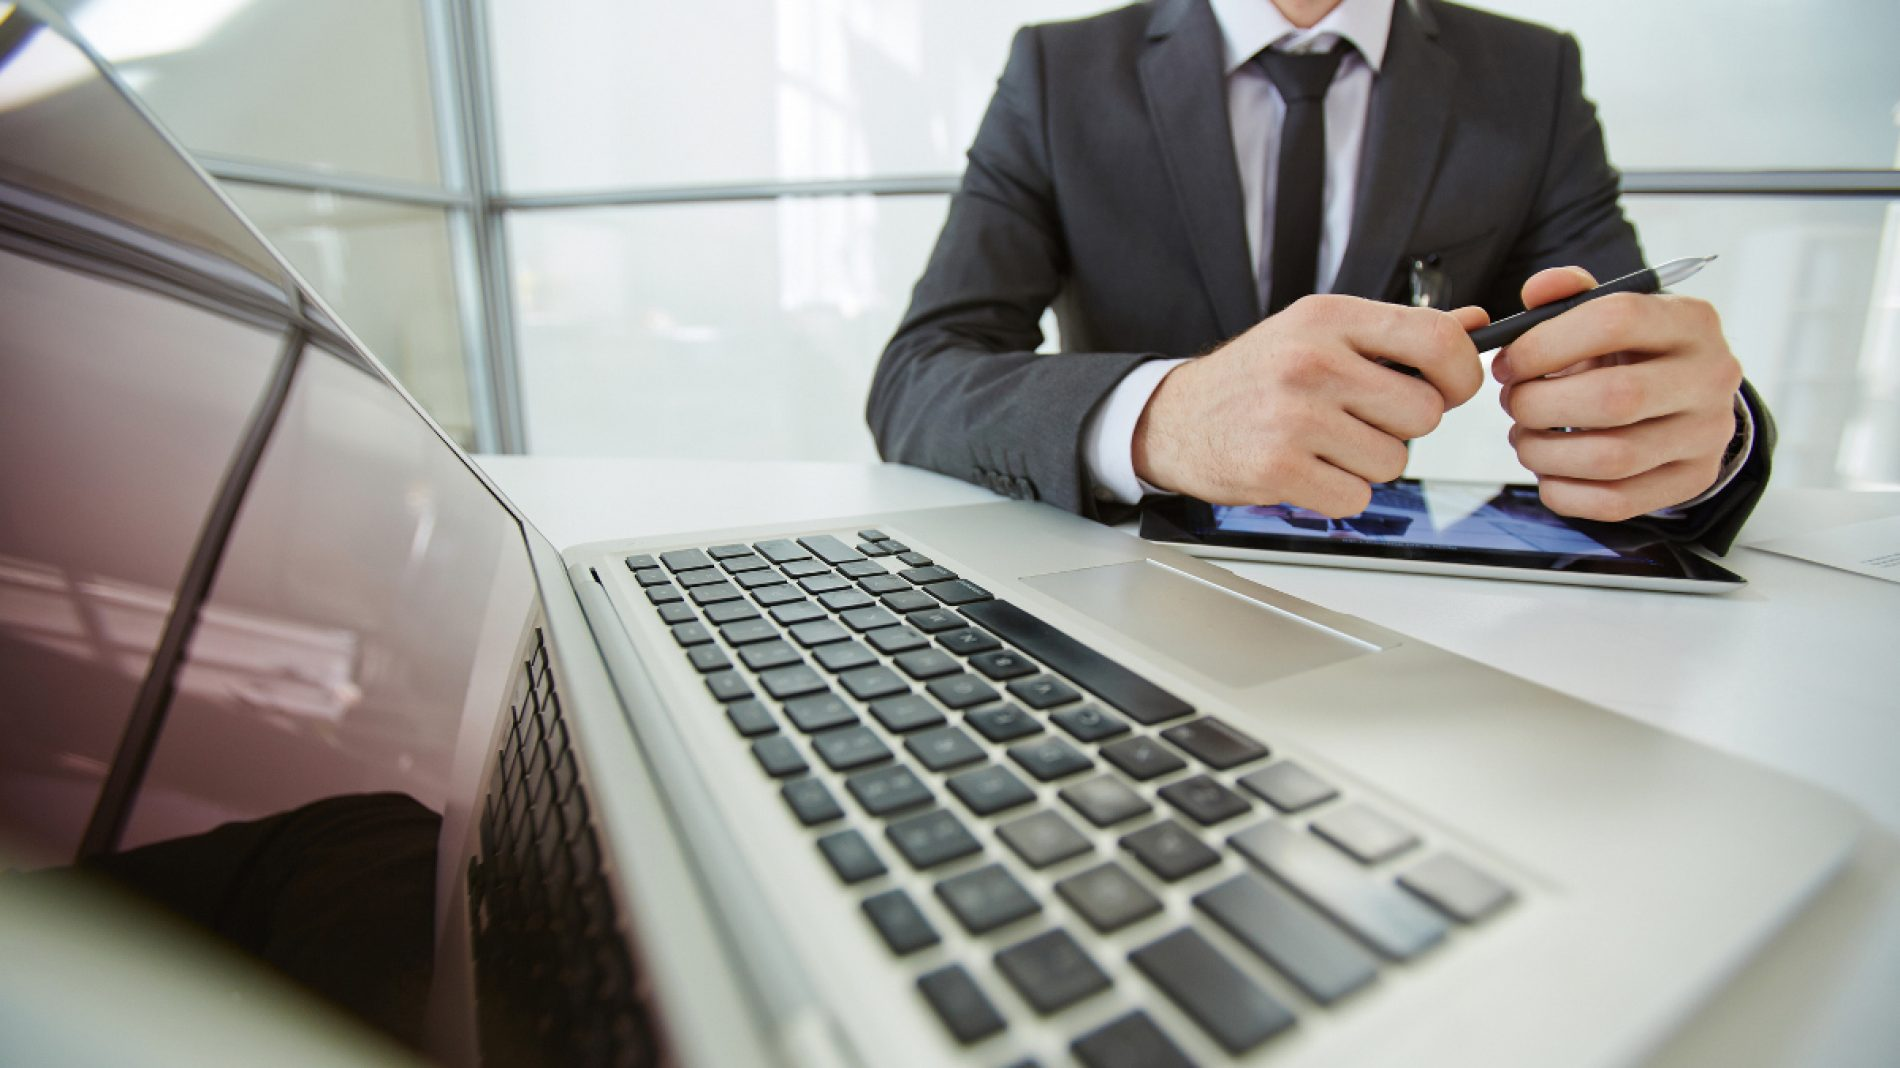 Close-up of laptop and businessman sitting at the table behind